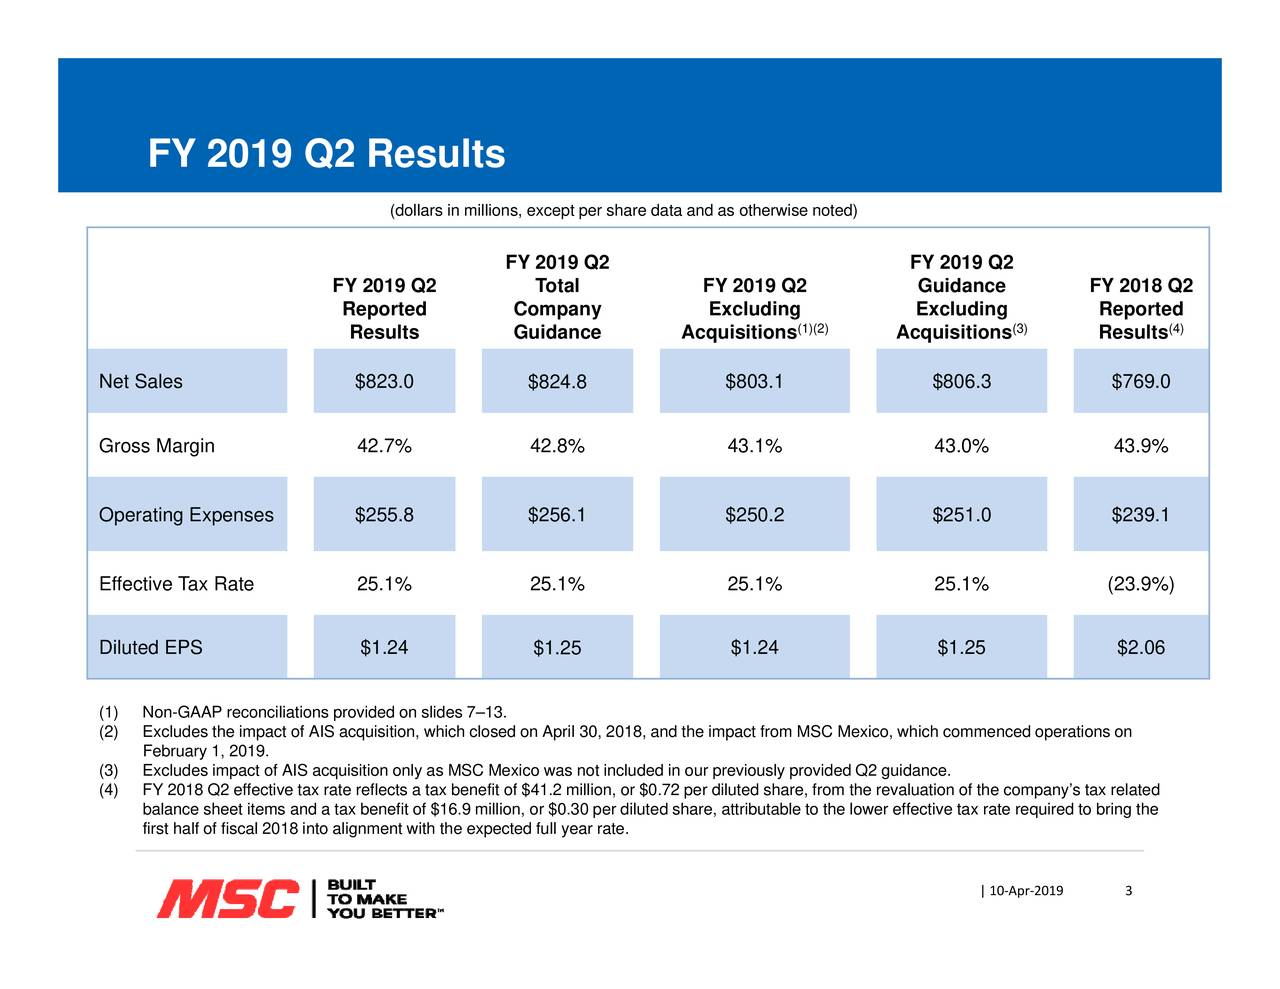 3 RepResults FY 2018 Q2 ations on ‐019 (3) required tAprring the ‐ e company's  0x related FY 2019 Q2uding Acquisitions the revaluation of th (1)(2) le to the lower effective tax rate otherwise noted) $1.24 $1.25 $2.06 $803.1 43.1% $250.2 2$806.3 43.0% $251.0$769.01%43.9% $239.1 (23.9%) FY 2019 Q2ng Acquisitions per diluted share, from d share, attributab share data and as 30, 2018, and the impact from MSC Mexico, which commenced oper Total $824.8 42.8% $256.1 25.1% $1.25 FY 2019 Q2uidance .9 million, or $0.30 per dilute (dollars in millions, except per Reportedts reflects a tax benefit of $41.2 million, or $0.72 FY 2019 Q2 FY 2019 Q2 Results February 1, 2019.alf of fiscal 2018 into alignment with the expected full year rate. Net SaleGross Marginating Expens$823.0 R42.7%2) NnxcludPsrhceicilatinfspovadediotiosnehi7–cl.sed on April was not included in our previously provided Q2 guidance.